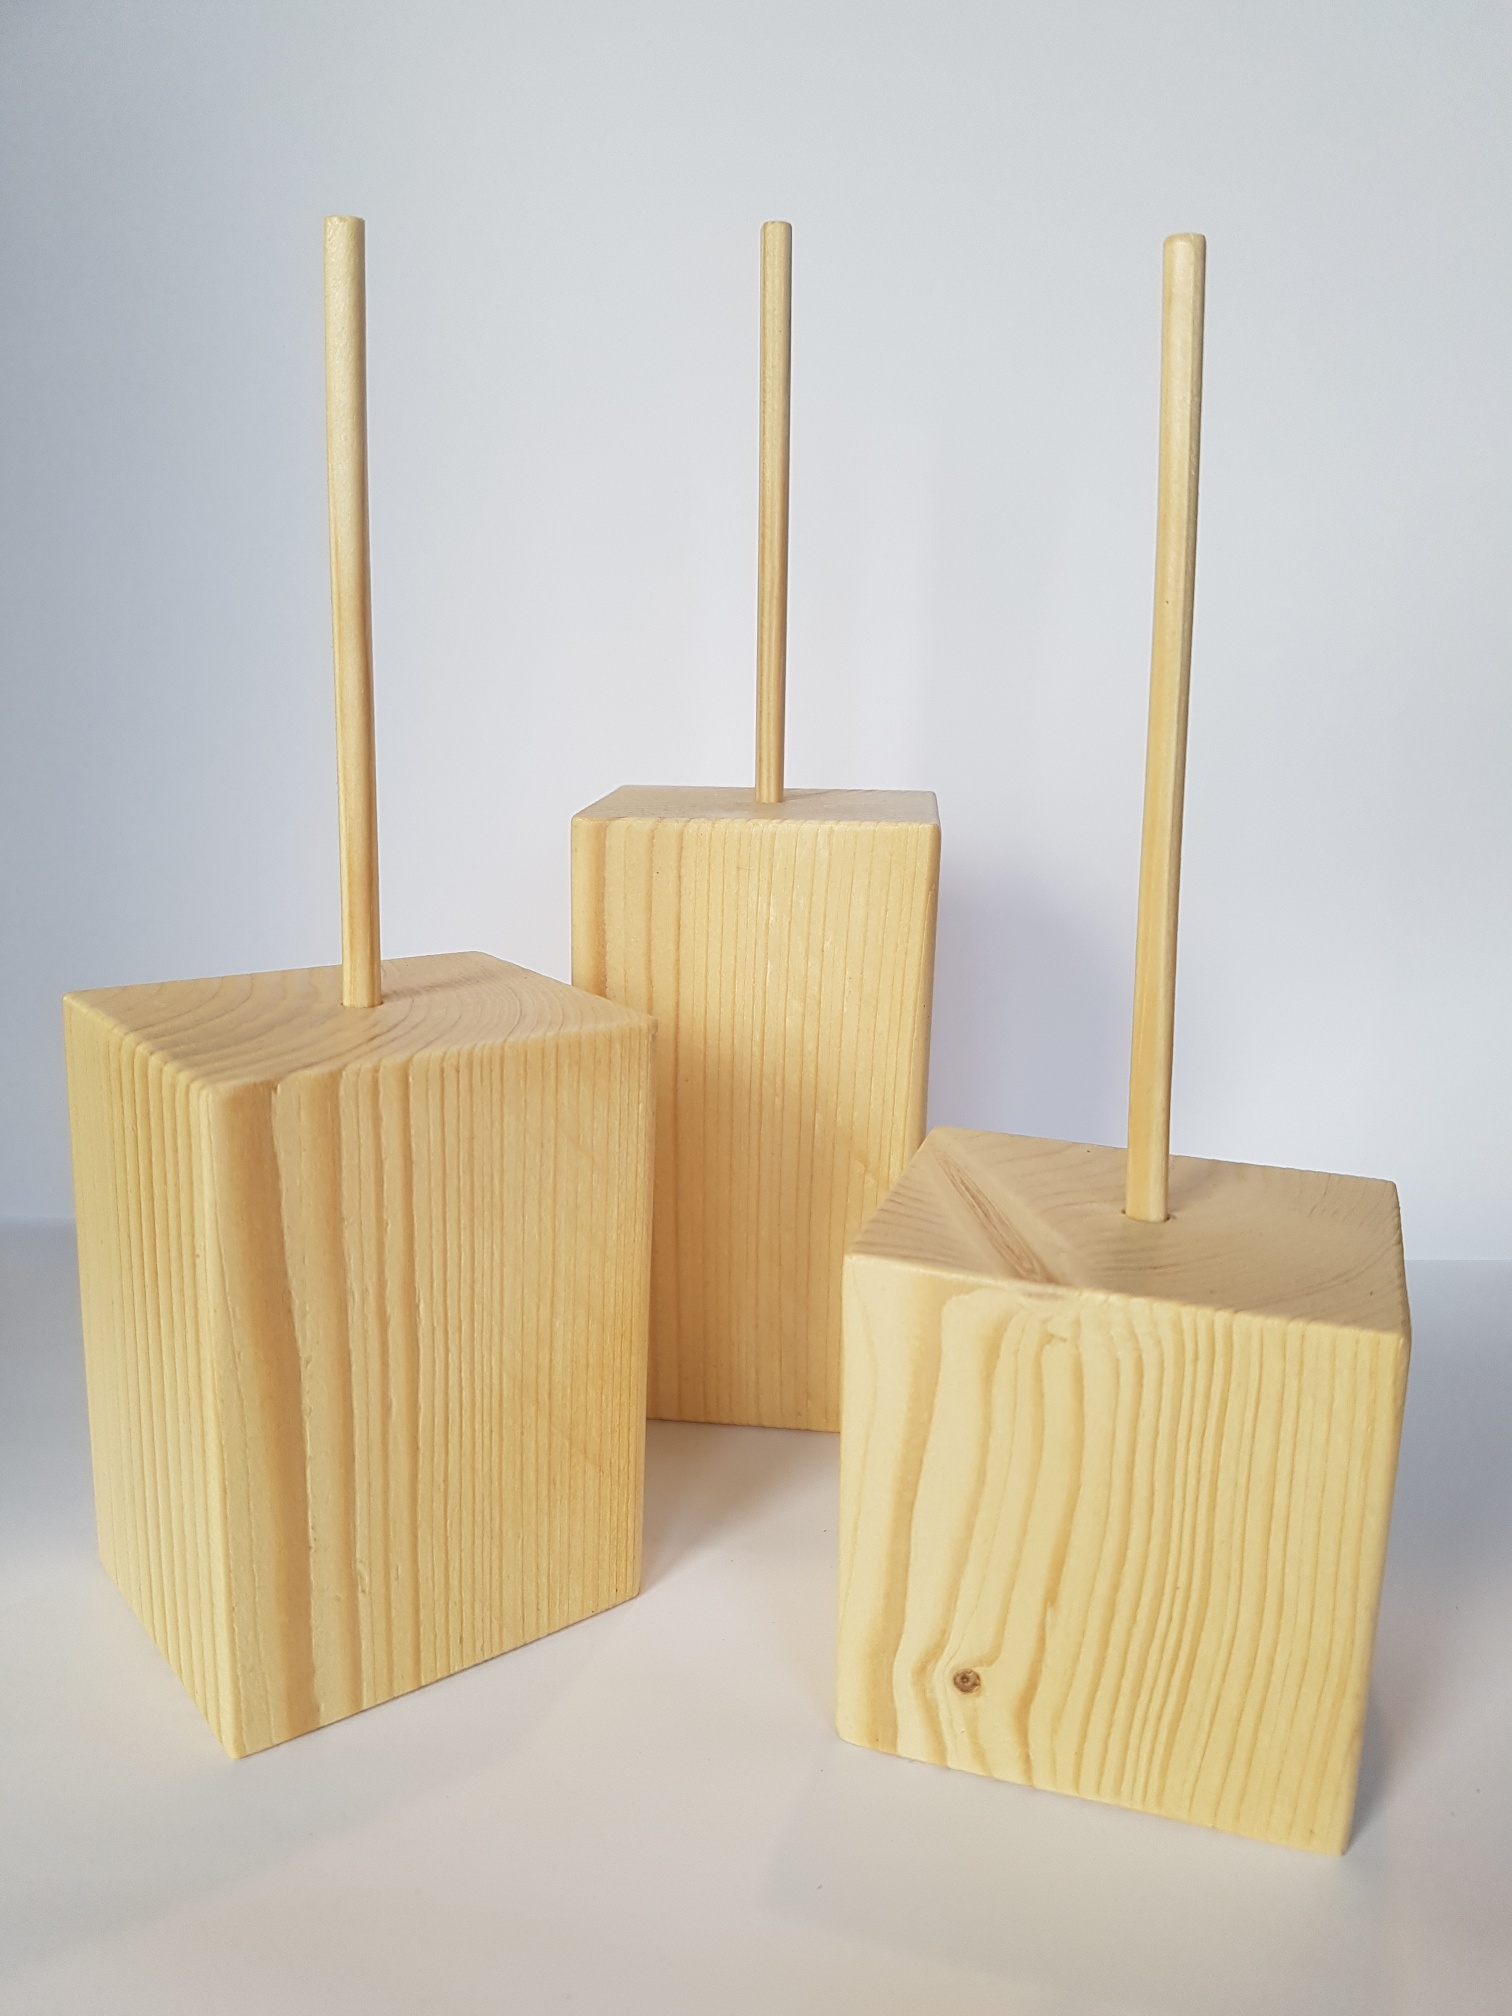 3 Tier Wooden Block Display Stands